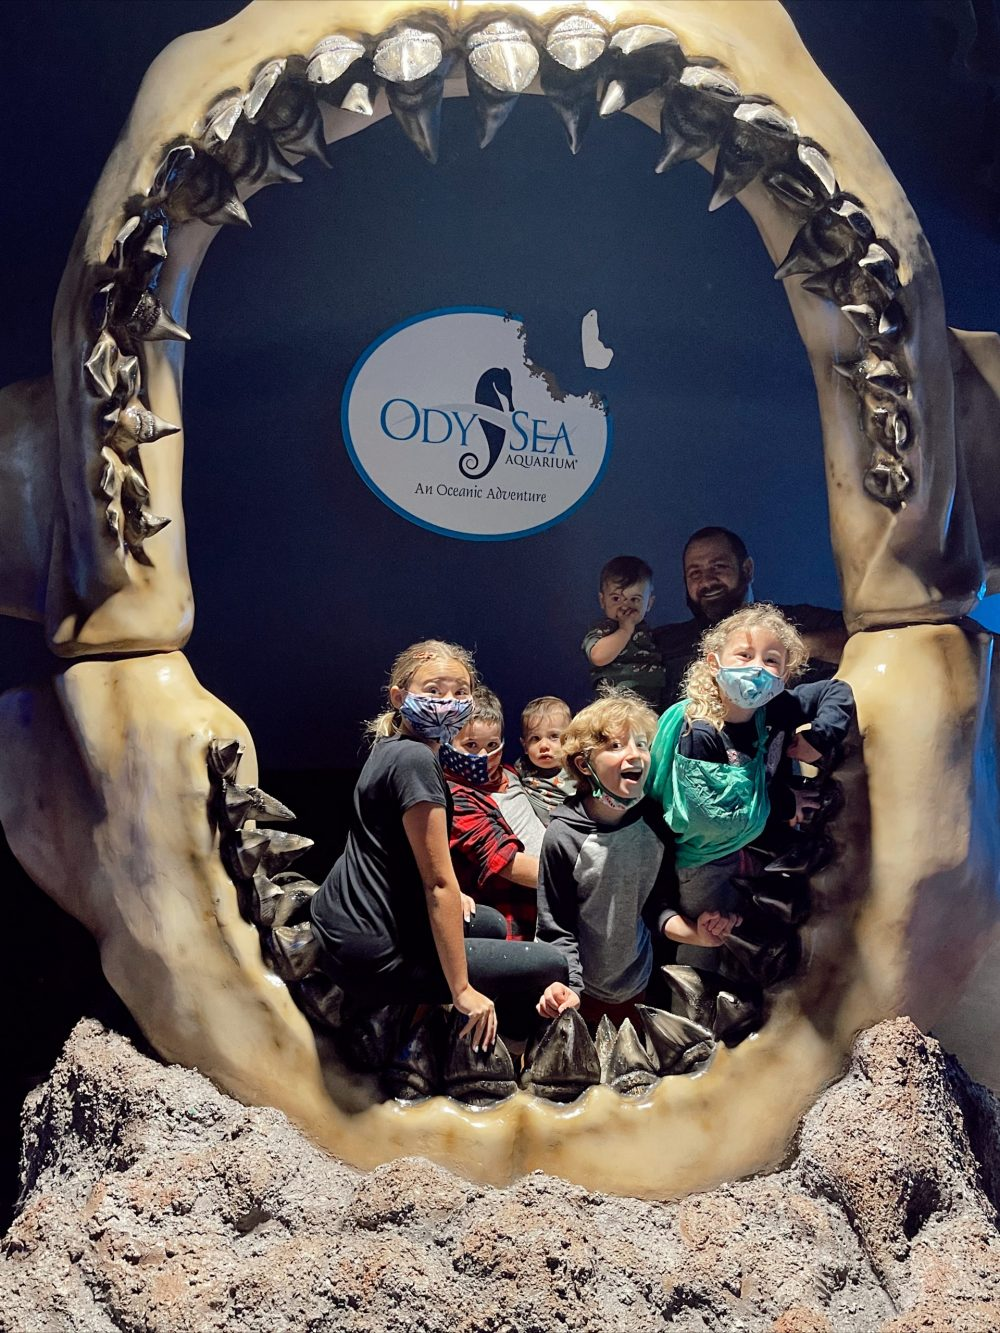 One of the Best Year Round Sun Destinations for Large Family Friendly Travel, Scottsdale Arizona. Holiday Winter Fun at Odysea aquarium at Arizona Boardwalk. |Guide by popular Florida travel blog, Fresh Mommy Blog: image of a family at the Odysea Aquarium.